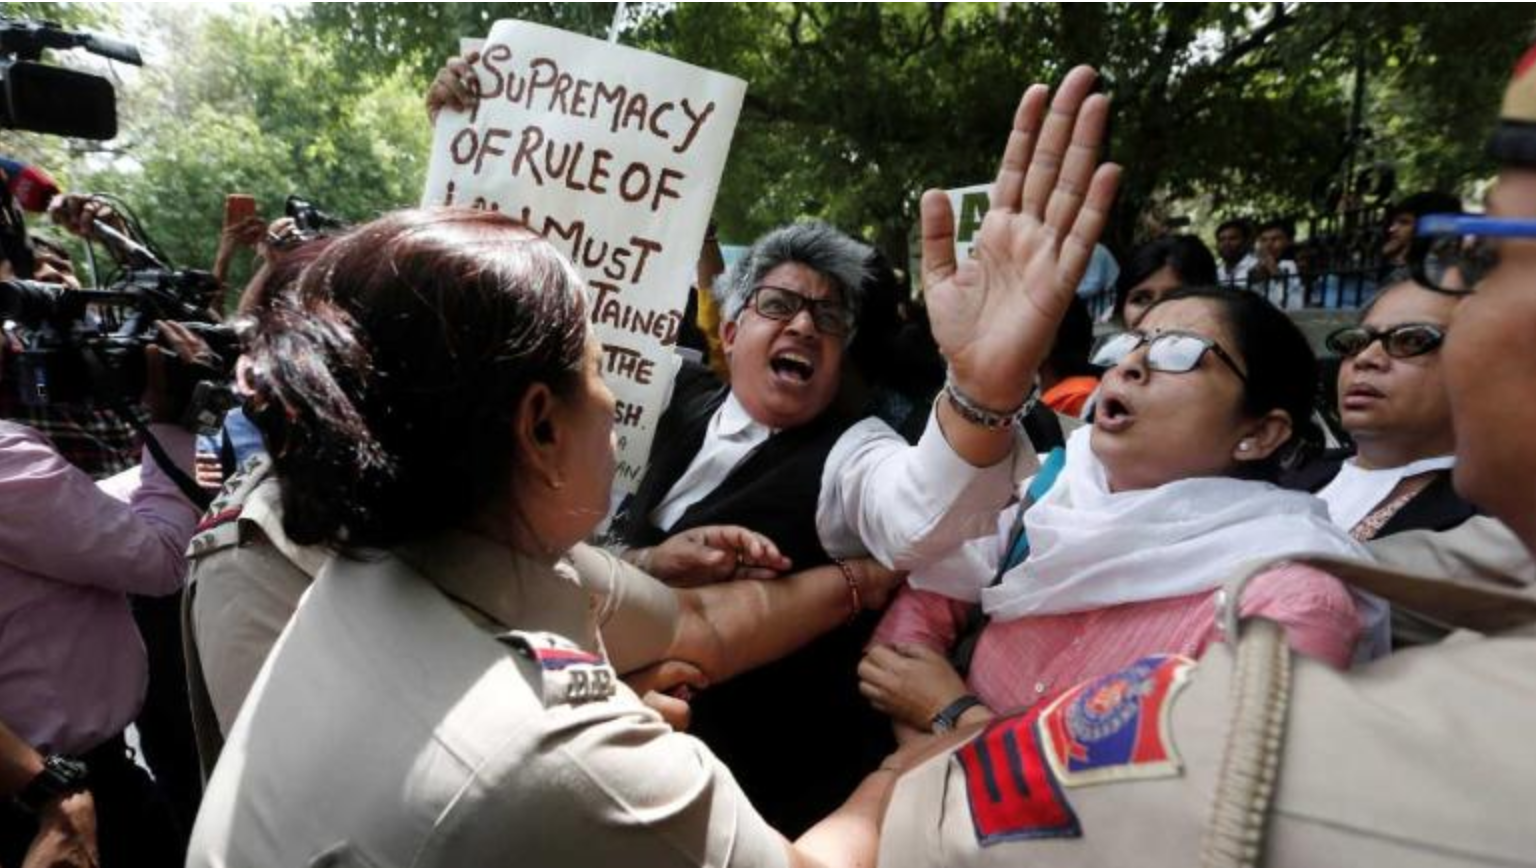 Dozens of demonstrators gathered at the Supreme Court to protest the court's decision. (Photo:  Reuters )